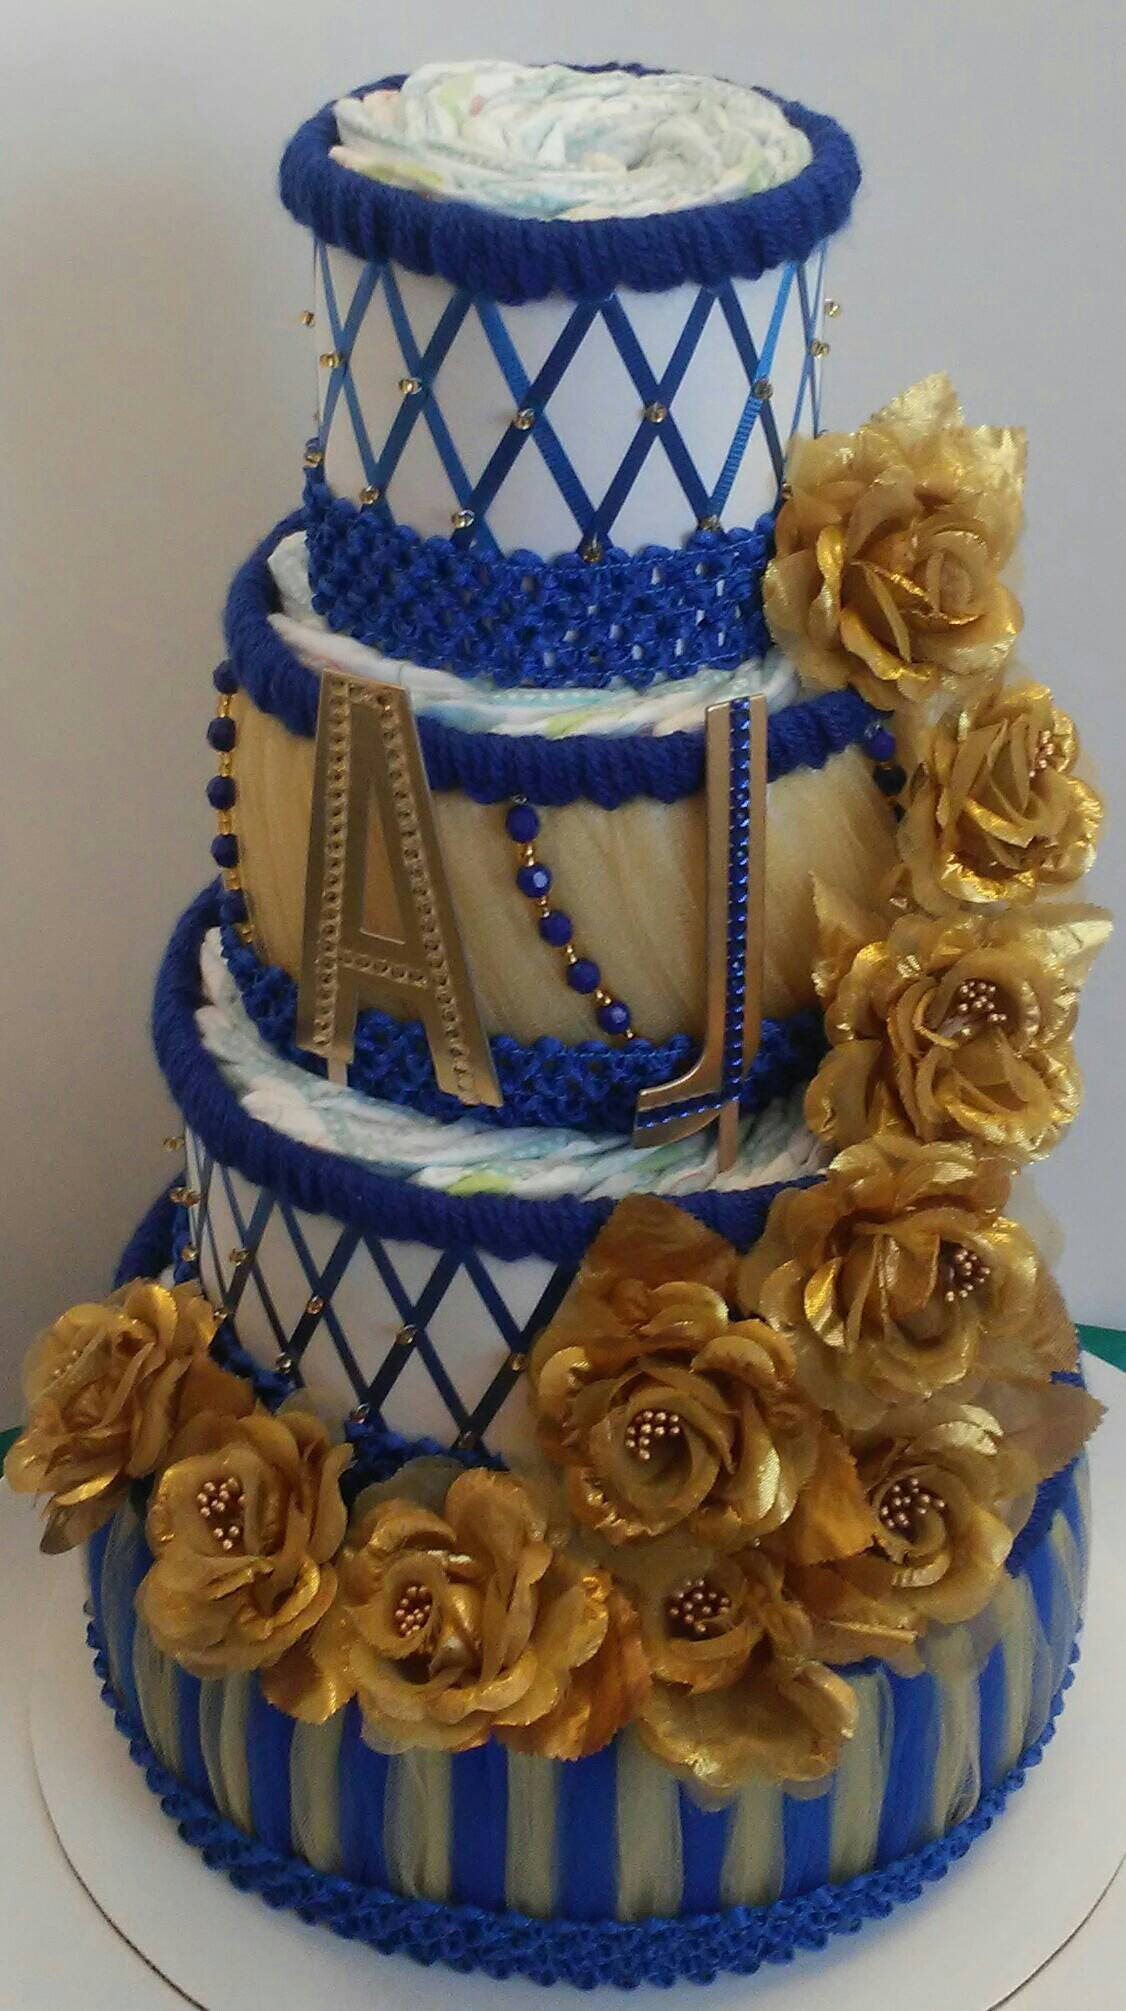 Royal Prince Elegant Themed Baby Shower Decor Royal Blue and